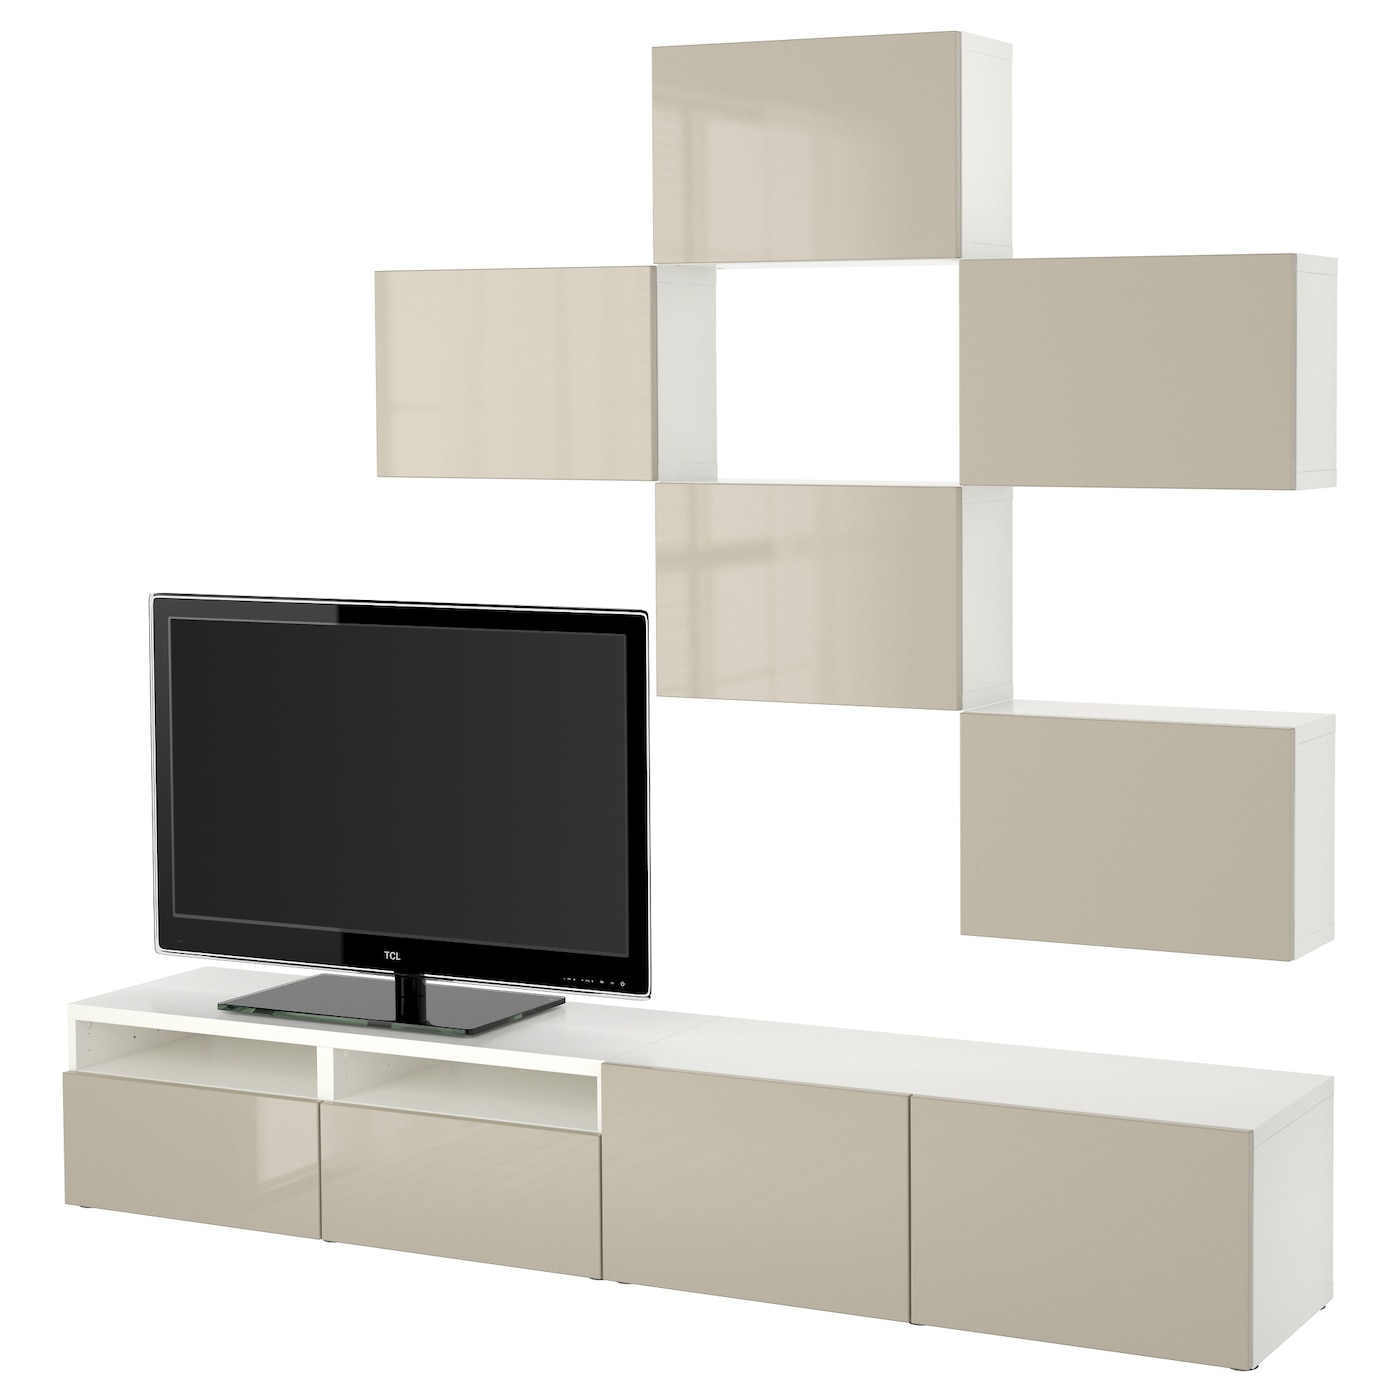 best tv storage combination white selsviken high gloss beige 240x20 40x204 cm ikea. Black Bedroom Furniture Sets. Home Design Ideas